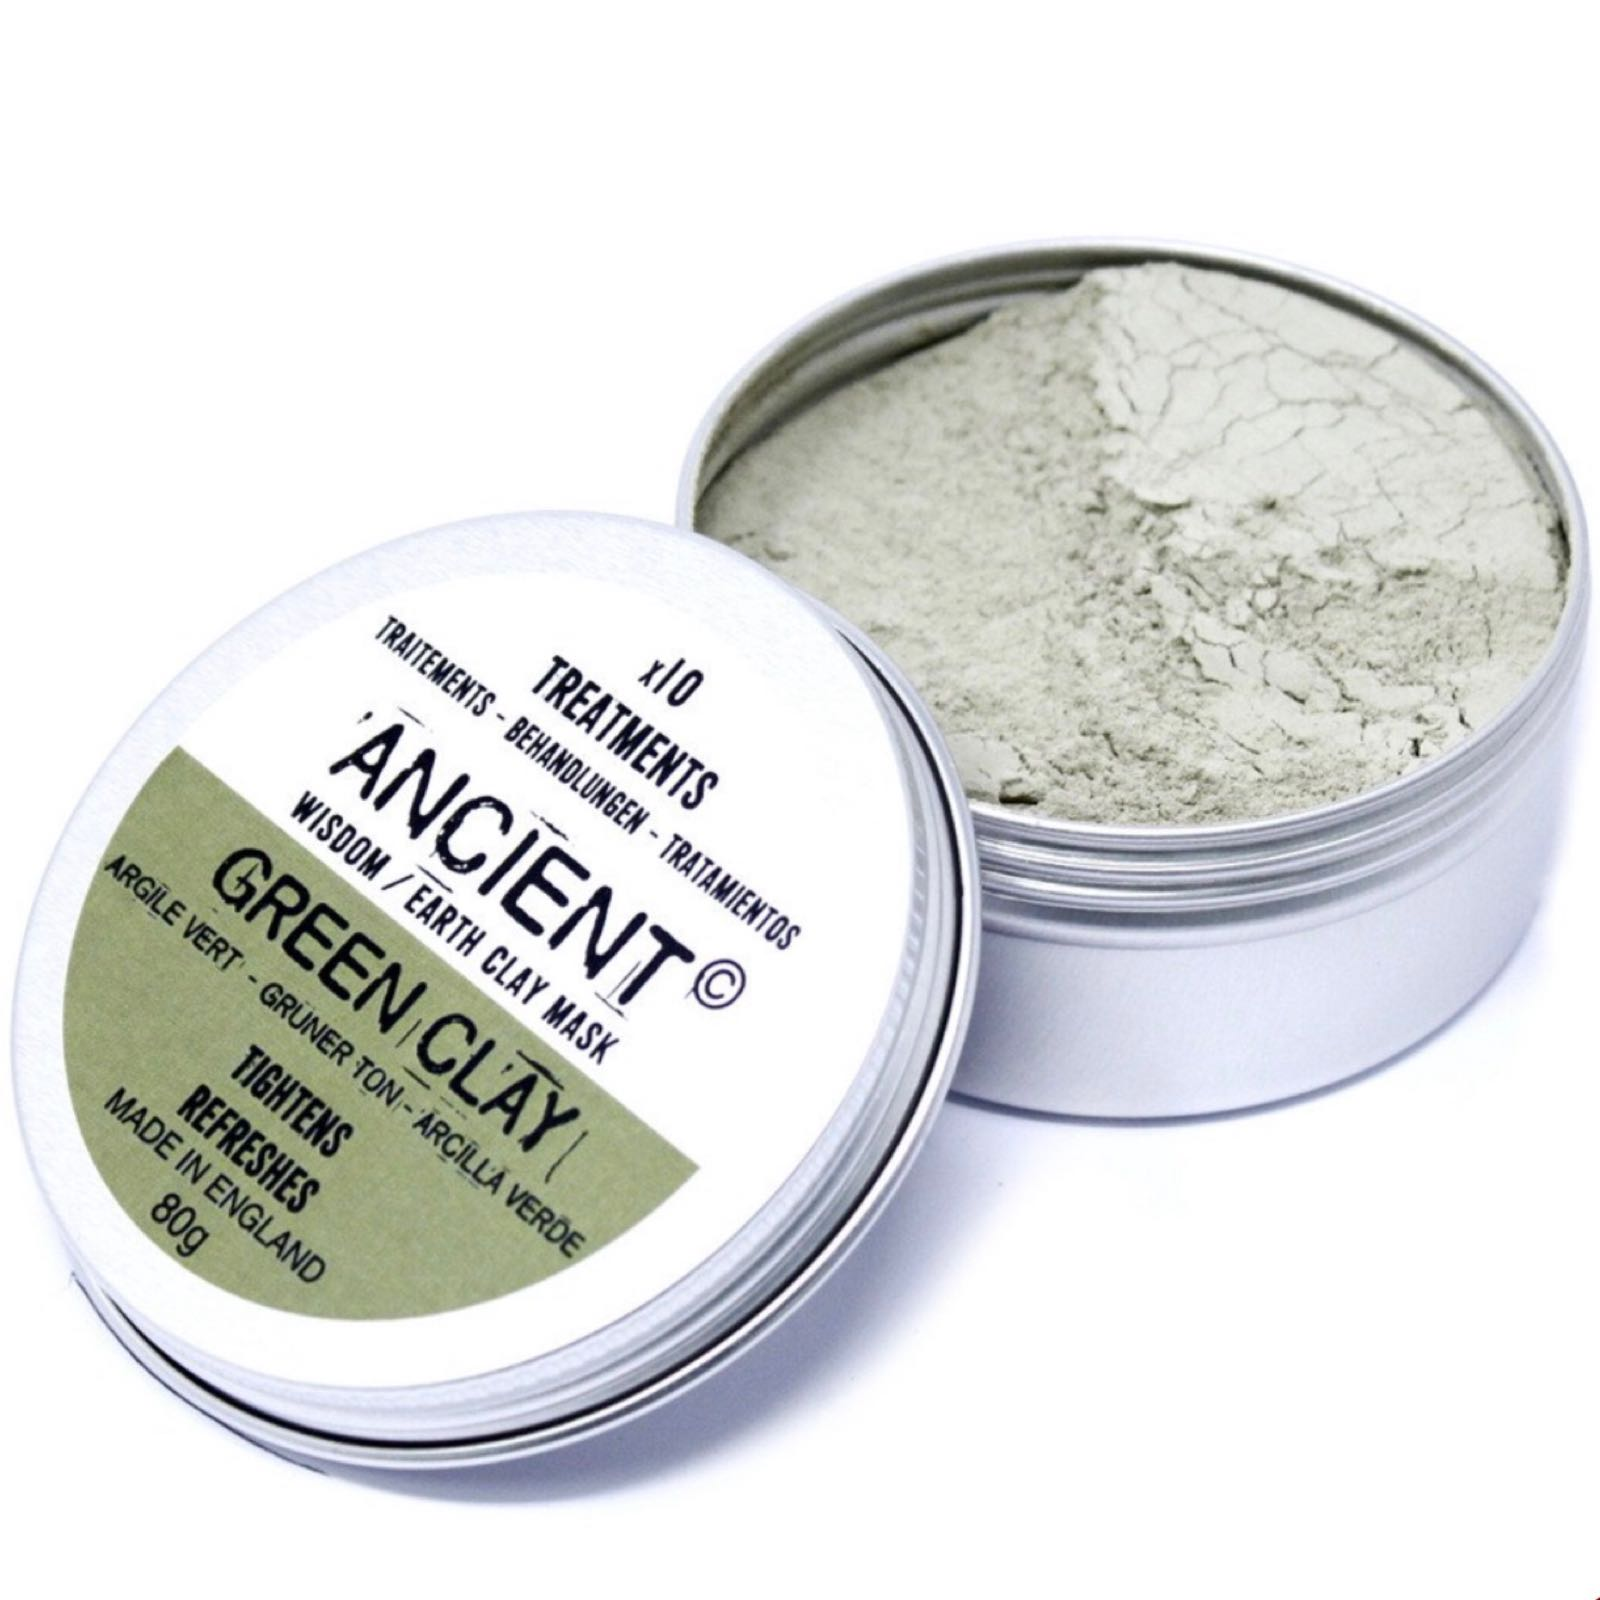 'Green Clay' Face Mask